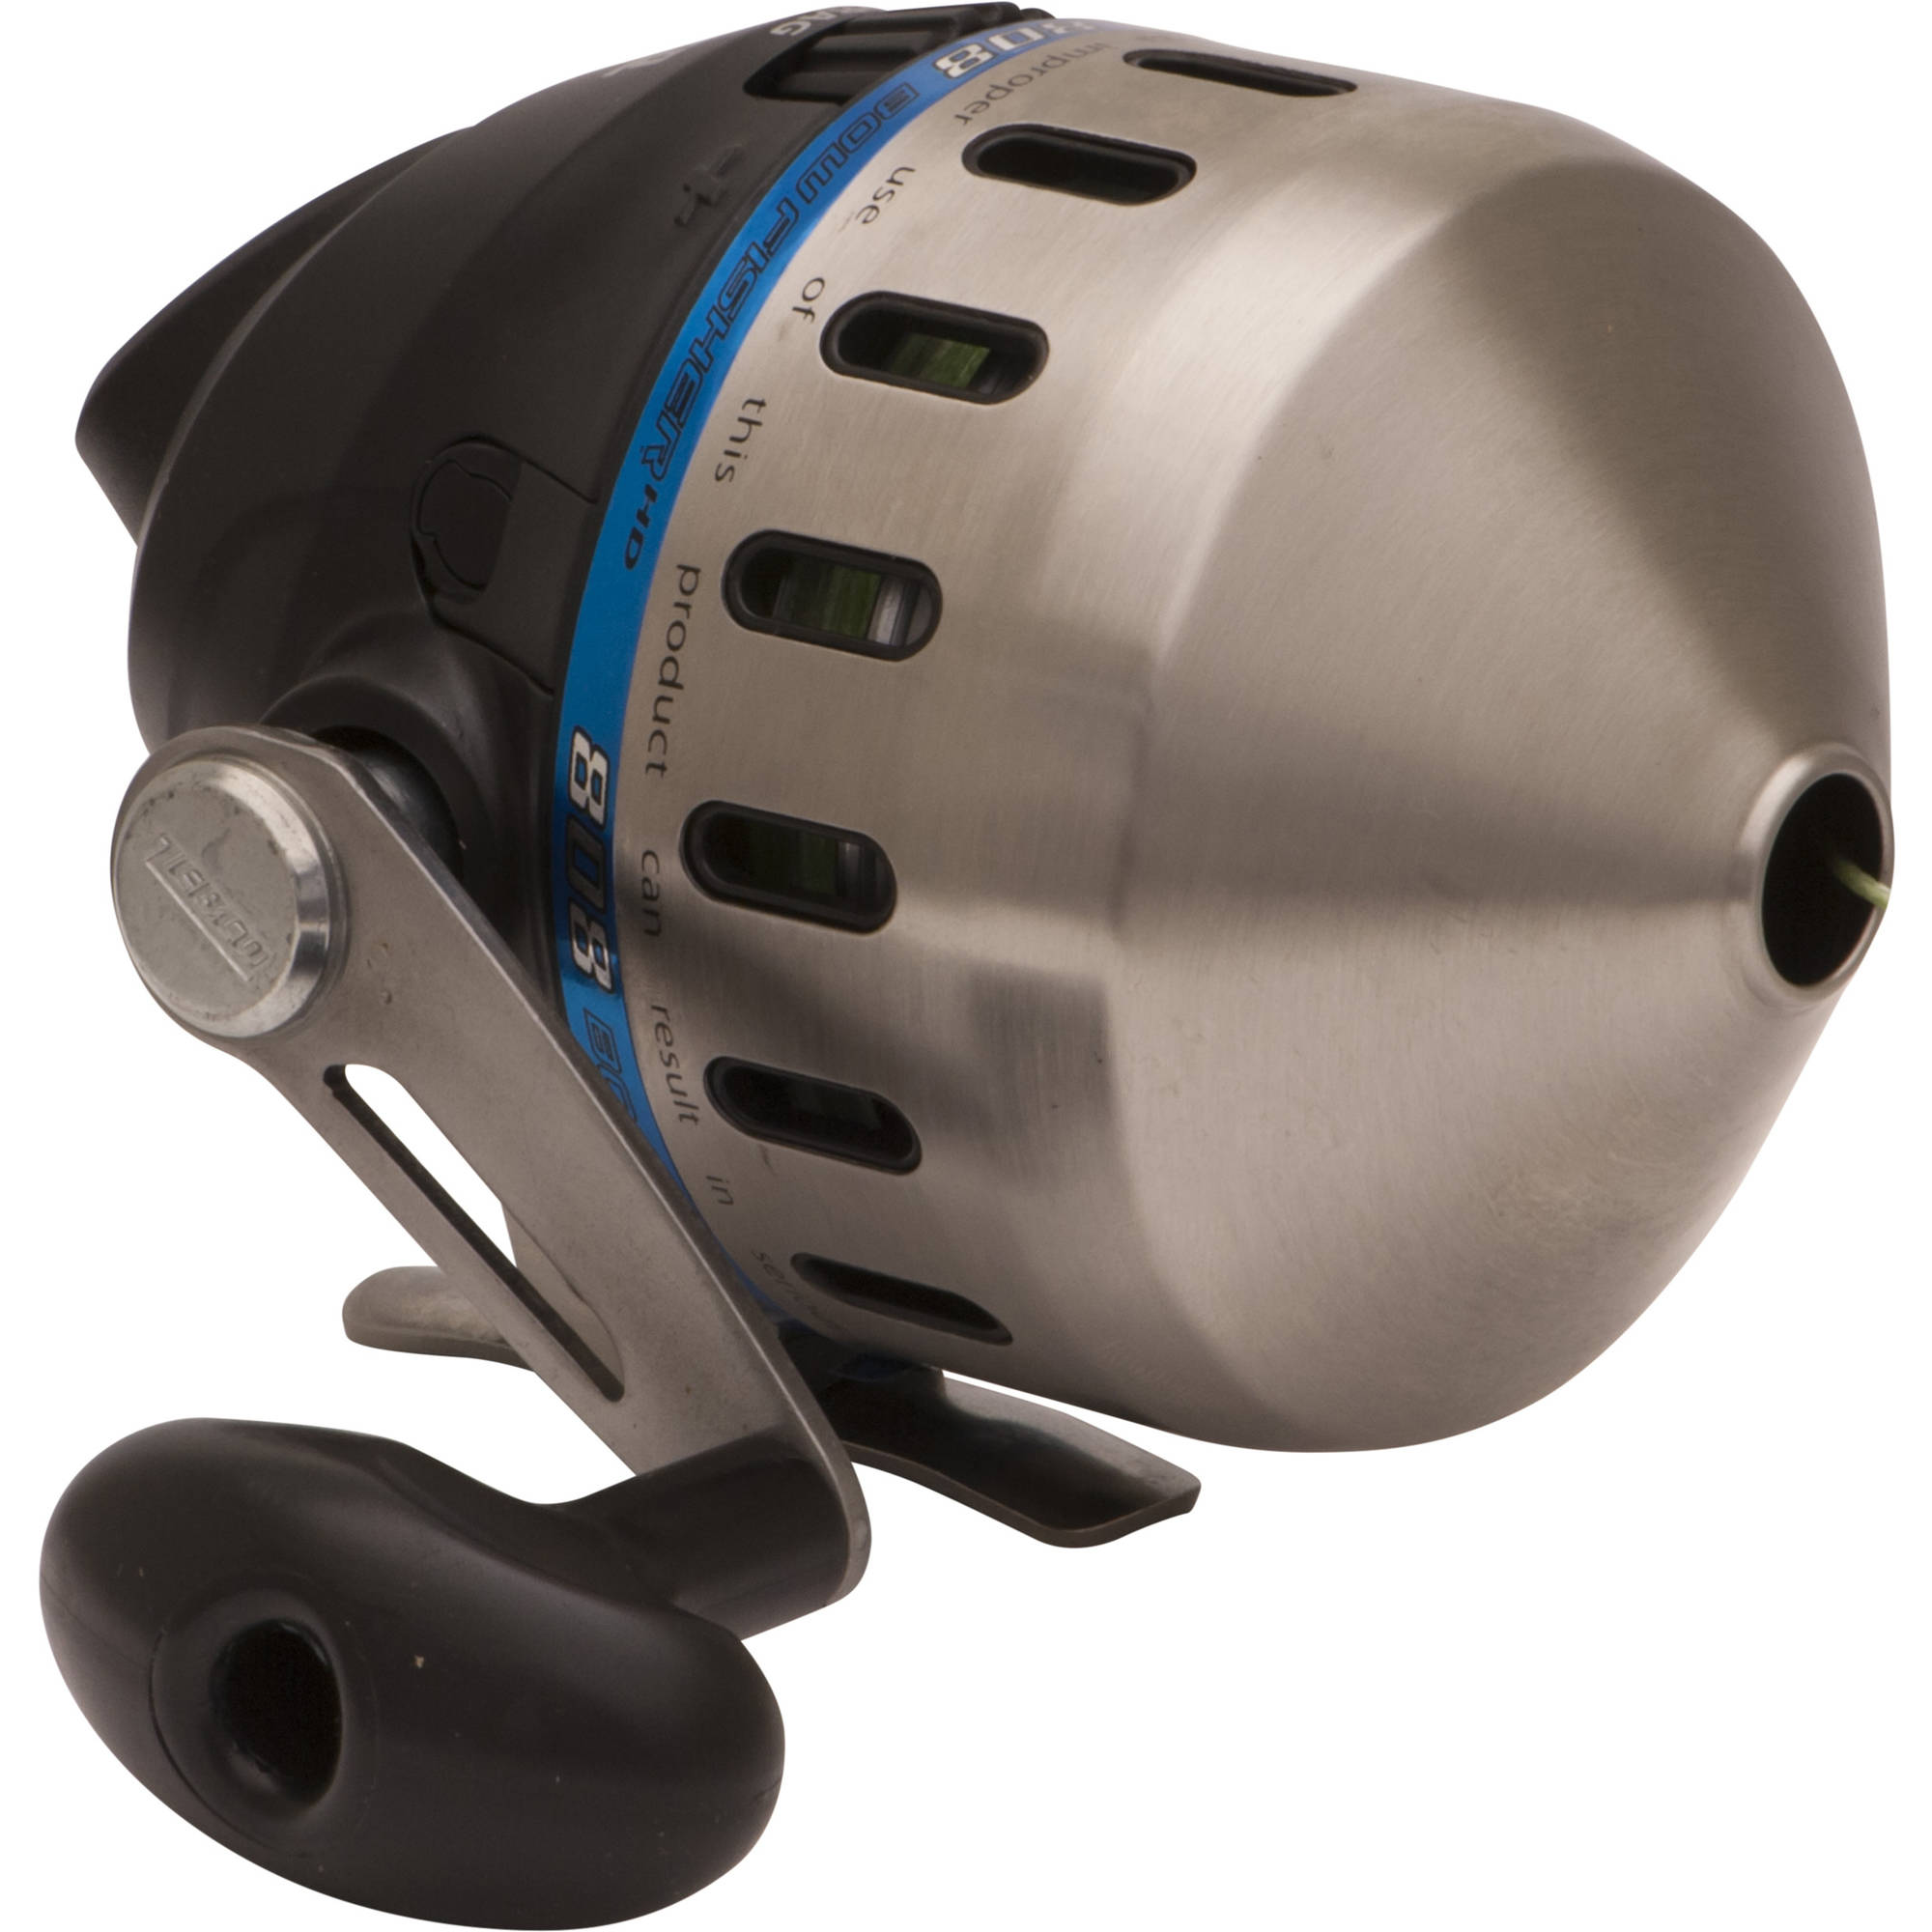 Zebco 808 Bowfishing Reel Stainless Steel Cover, 200 lb Braid